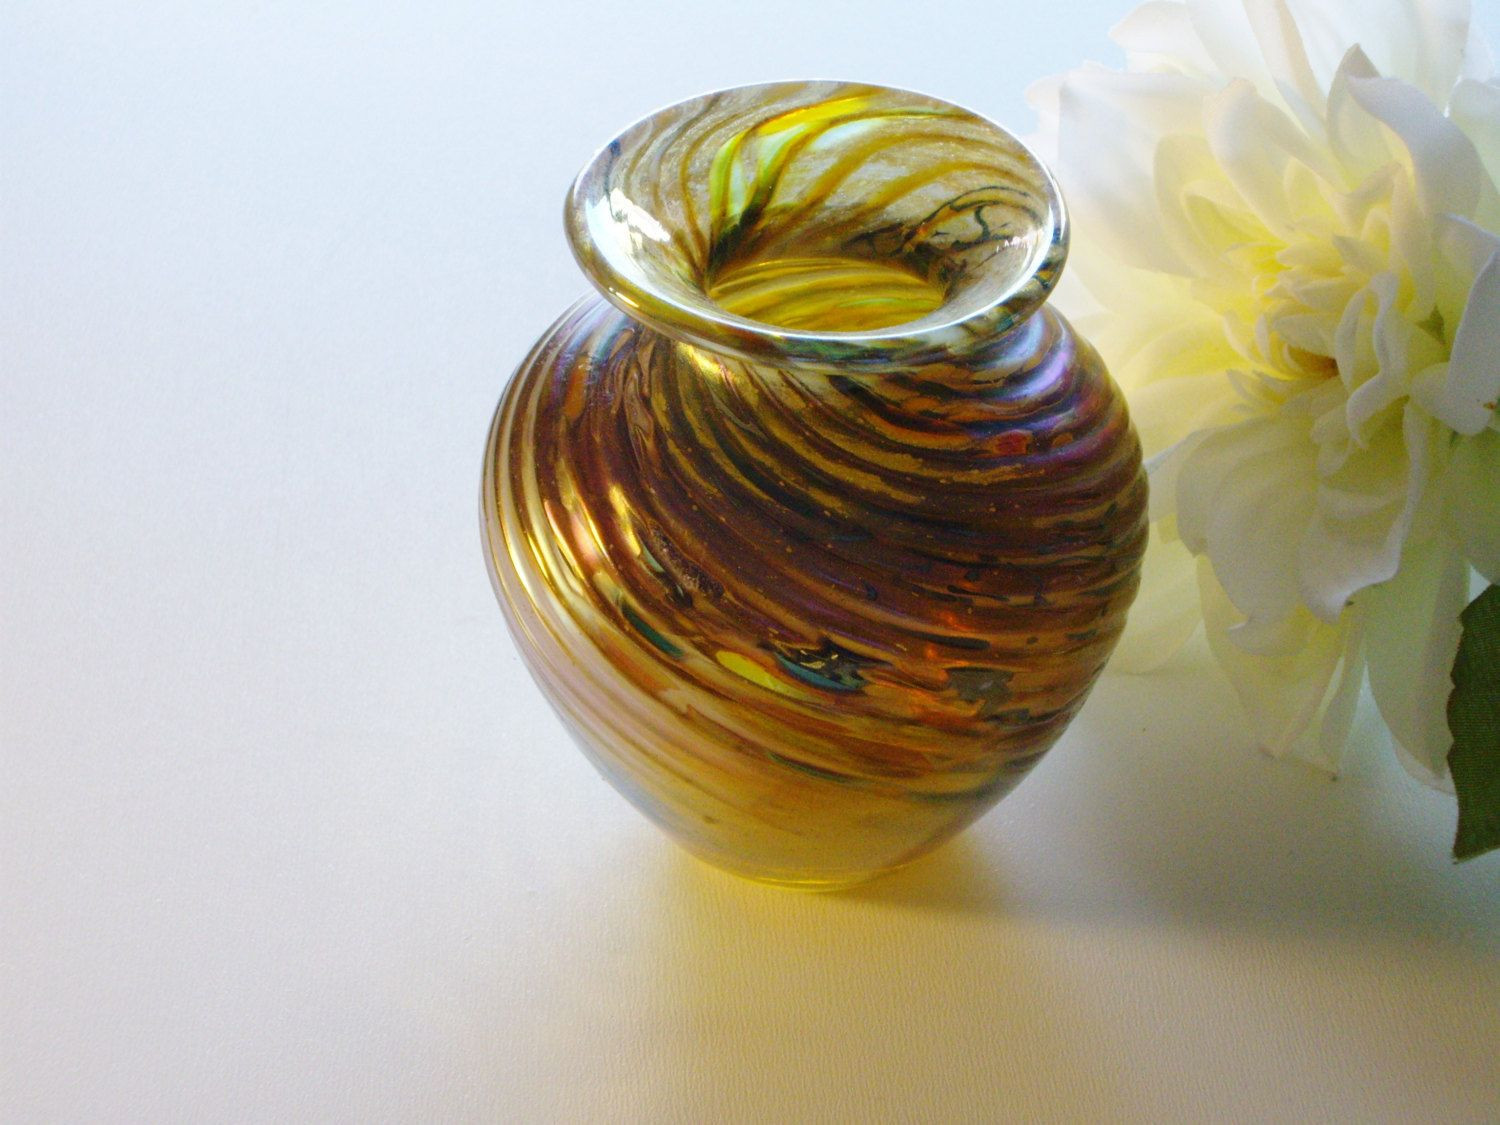 Small Vintage Glass Vases Of Vintage Art Glass Vase Small Metallic Swirls Hand Blown Gold by Throughout Vintage Art Glass Vase Small Metallic Swirls Hand Blown Gold by Vintagerous On Etsy